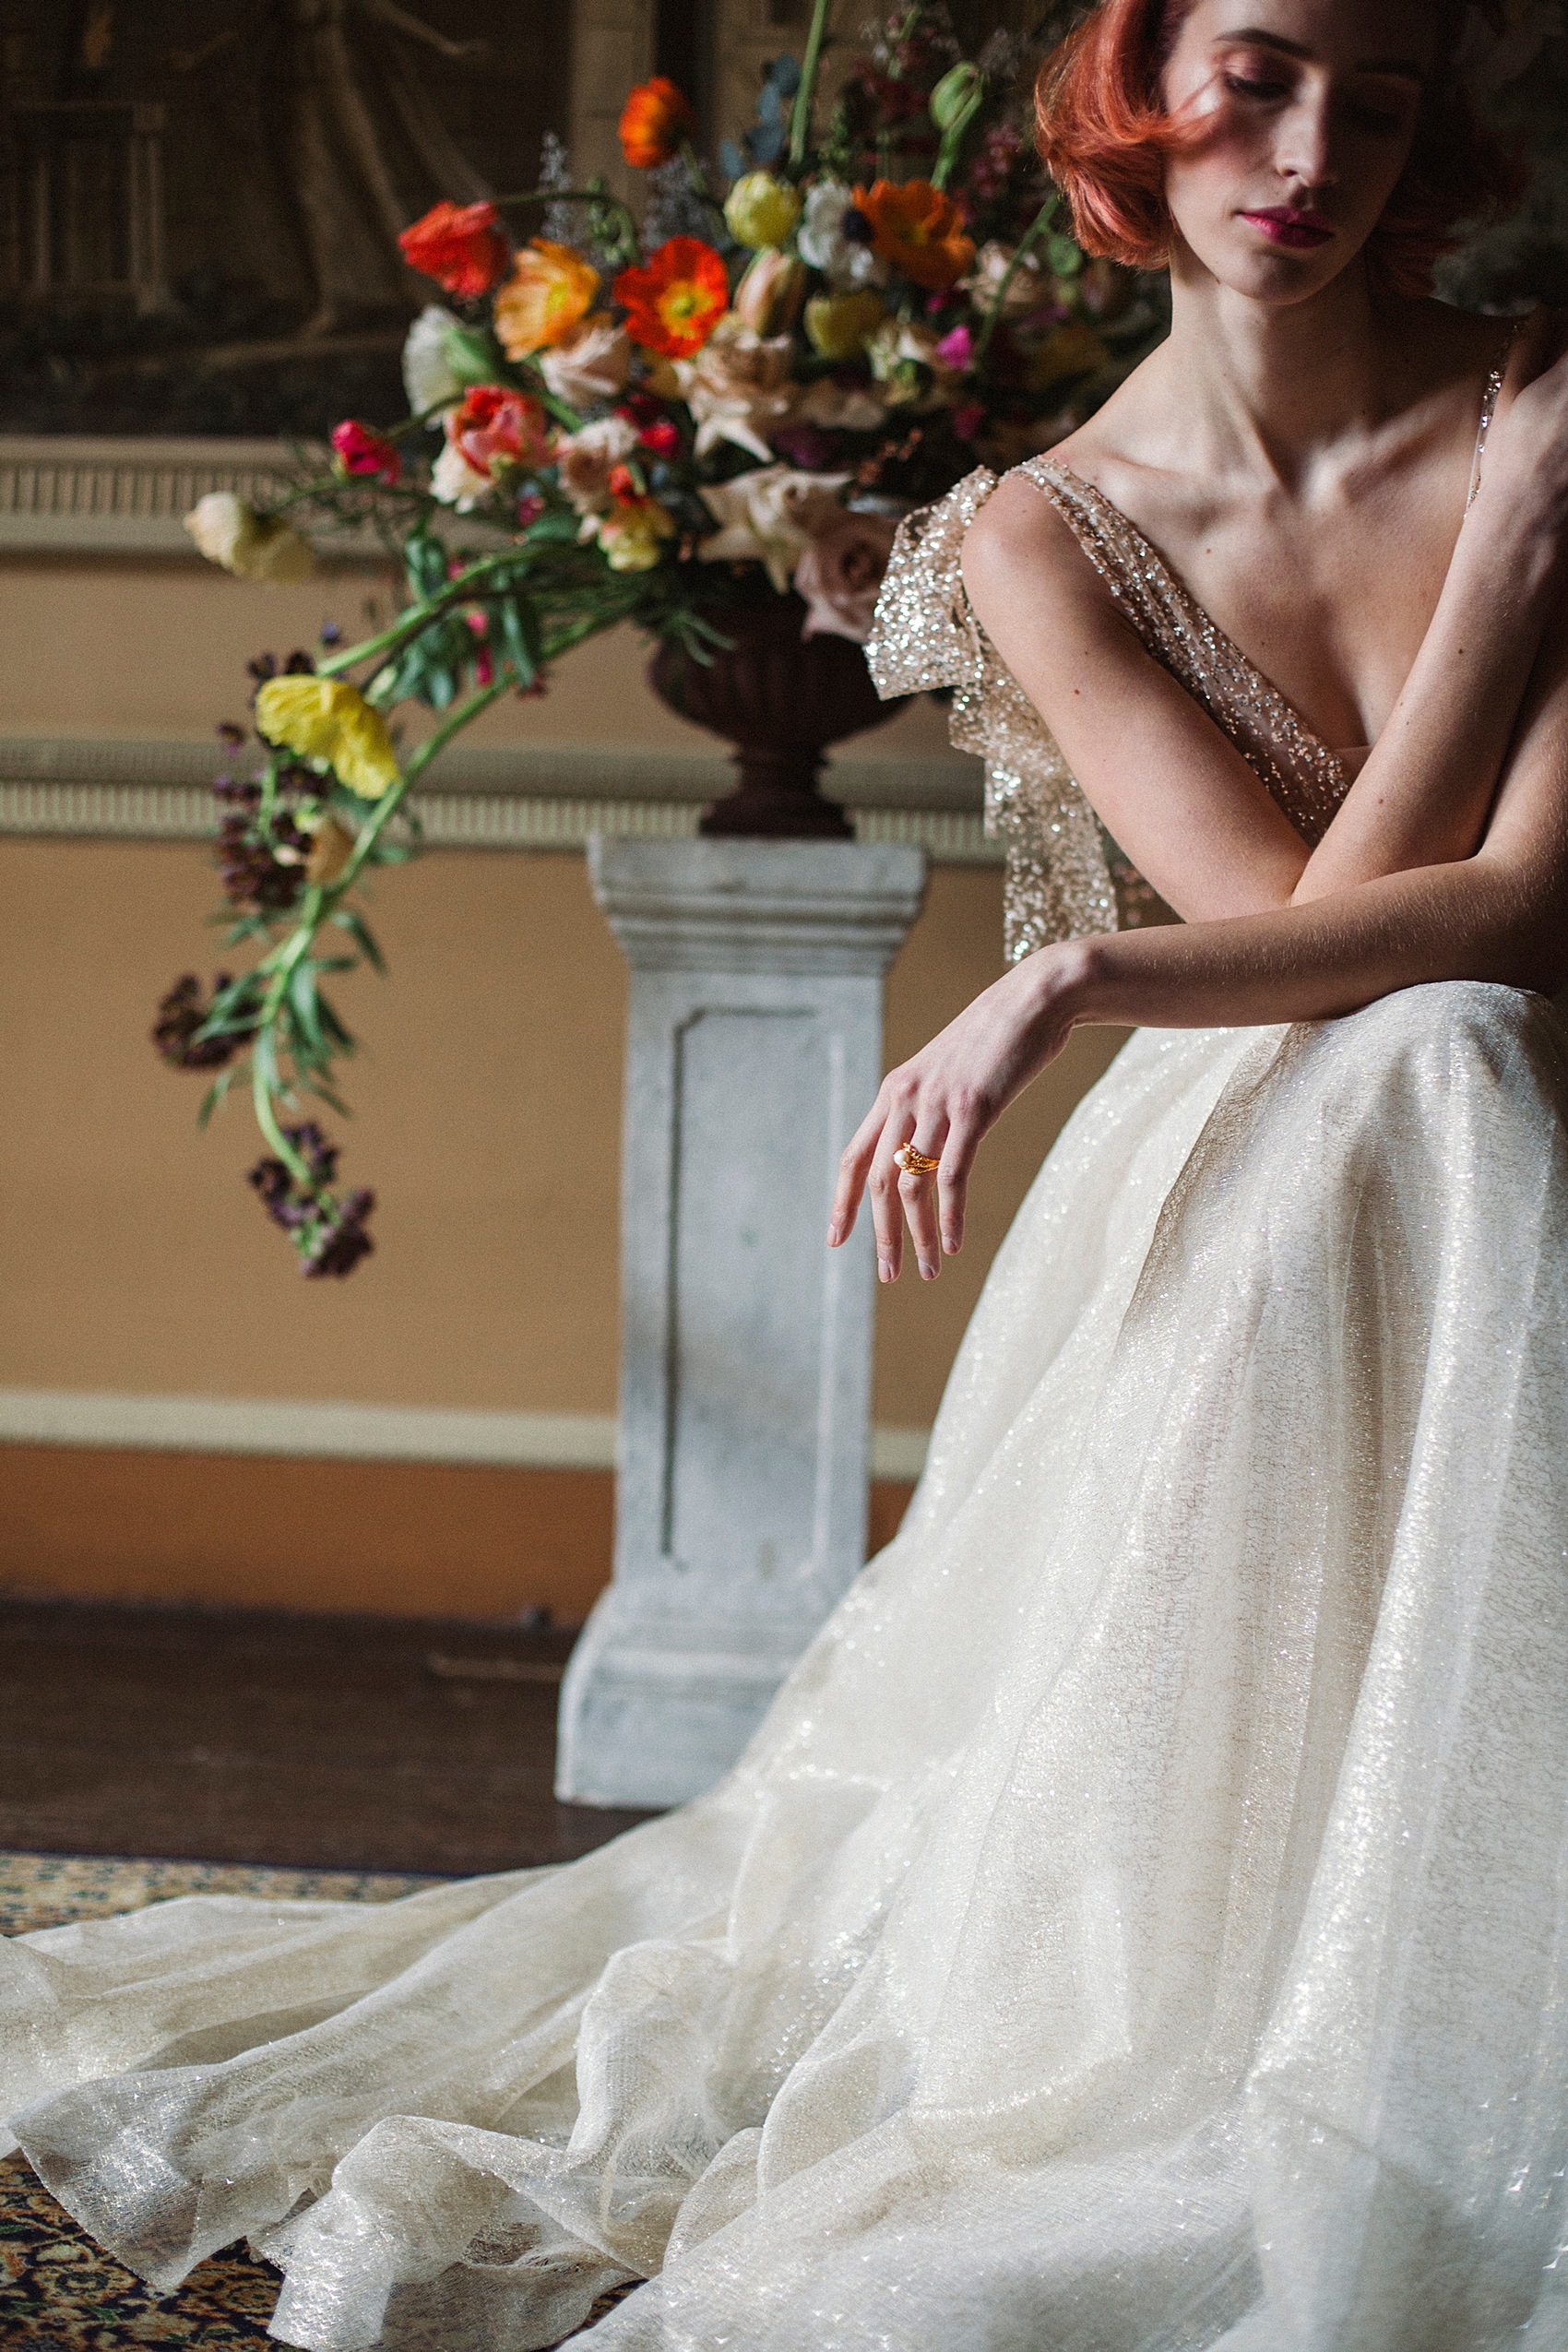 Spring Bridal Glamour At Home House A Private Members Club Intimate London Wedding Venue